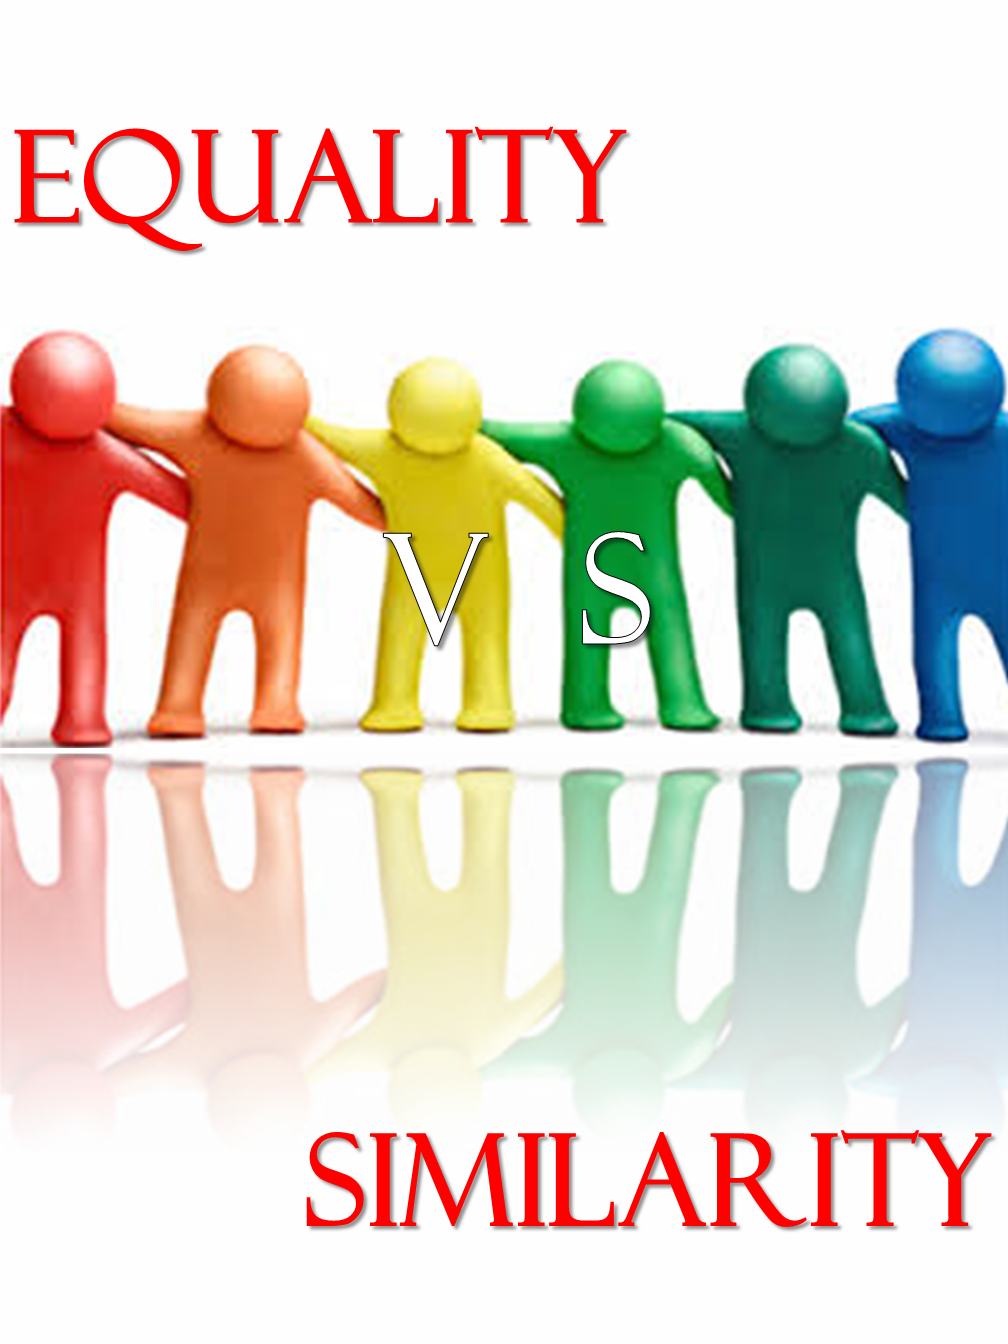 Equality vs Similarity